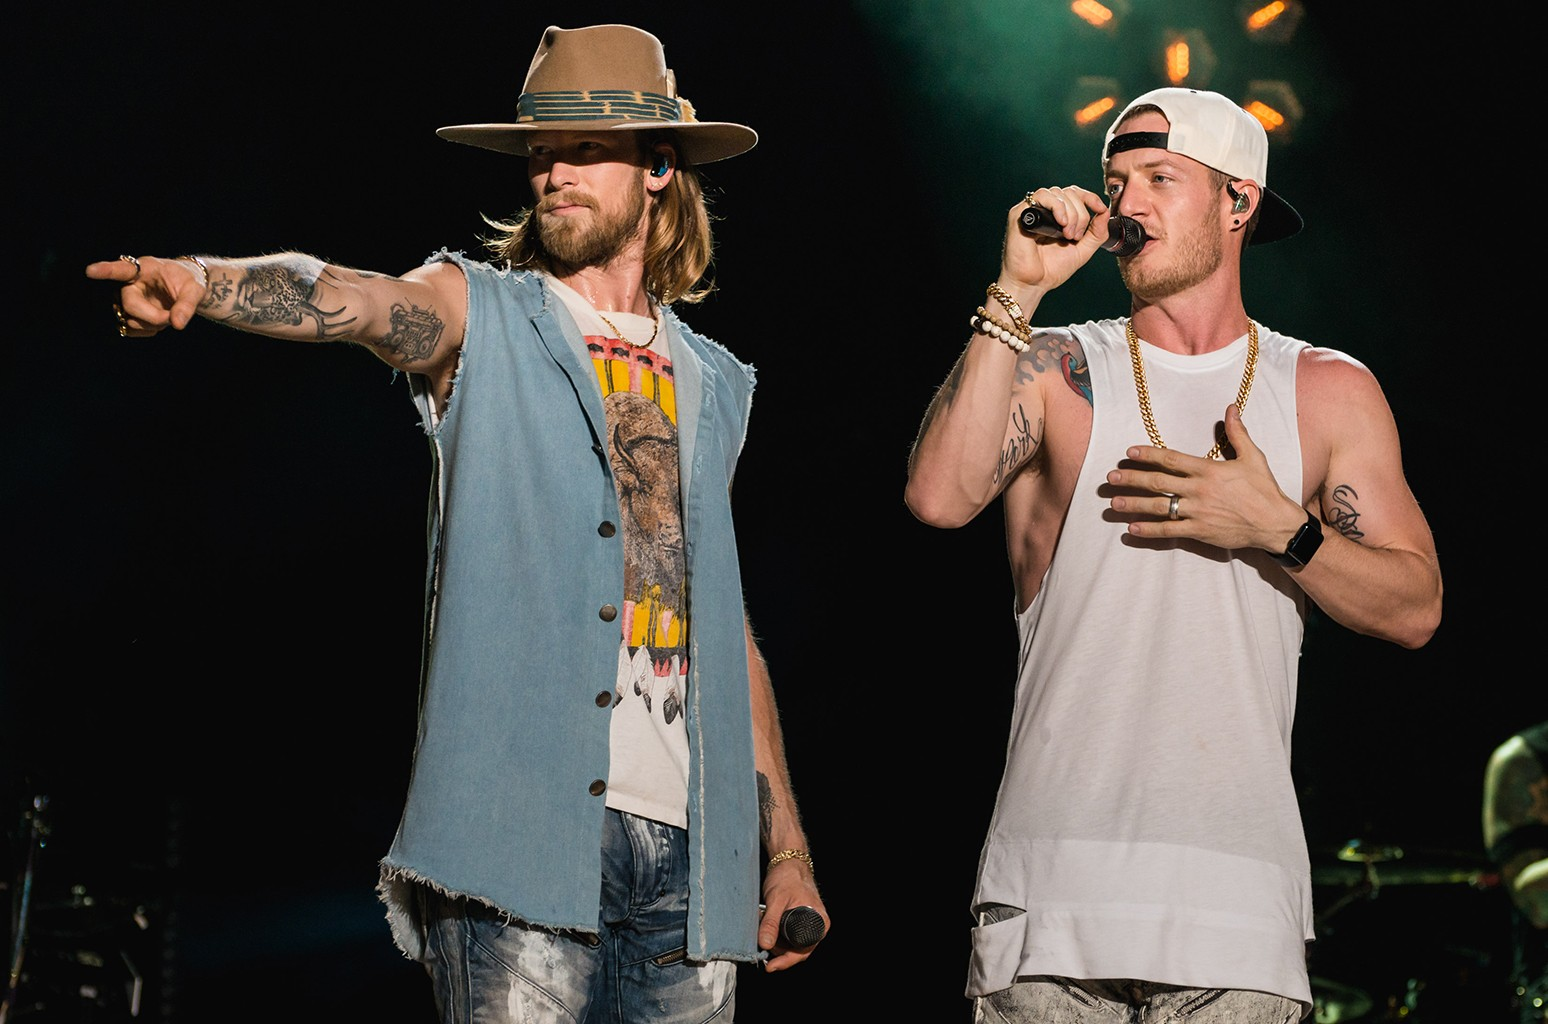 Brian Kelley and Tyler Hubbard of Florida Georgia Line perform at Nissan Stadium during day 3 of the 2017 CMA Music Festival on June 10, 2017 in Nashville, Tenn.